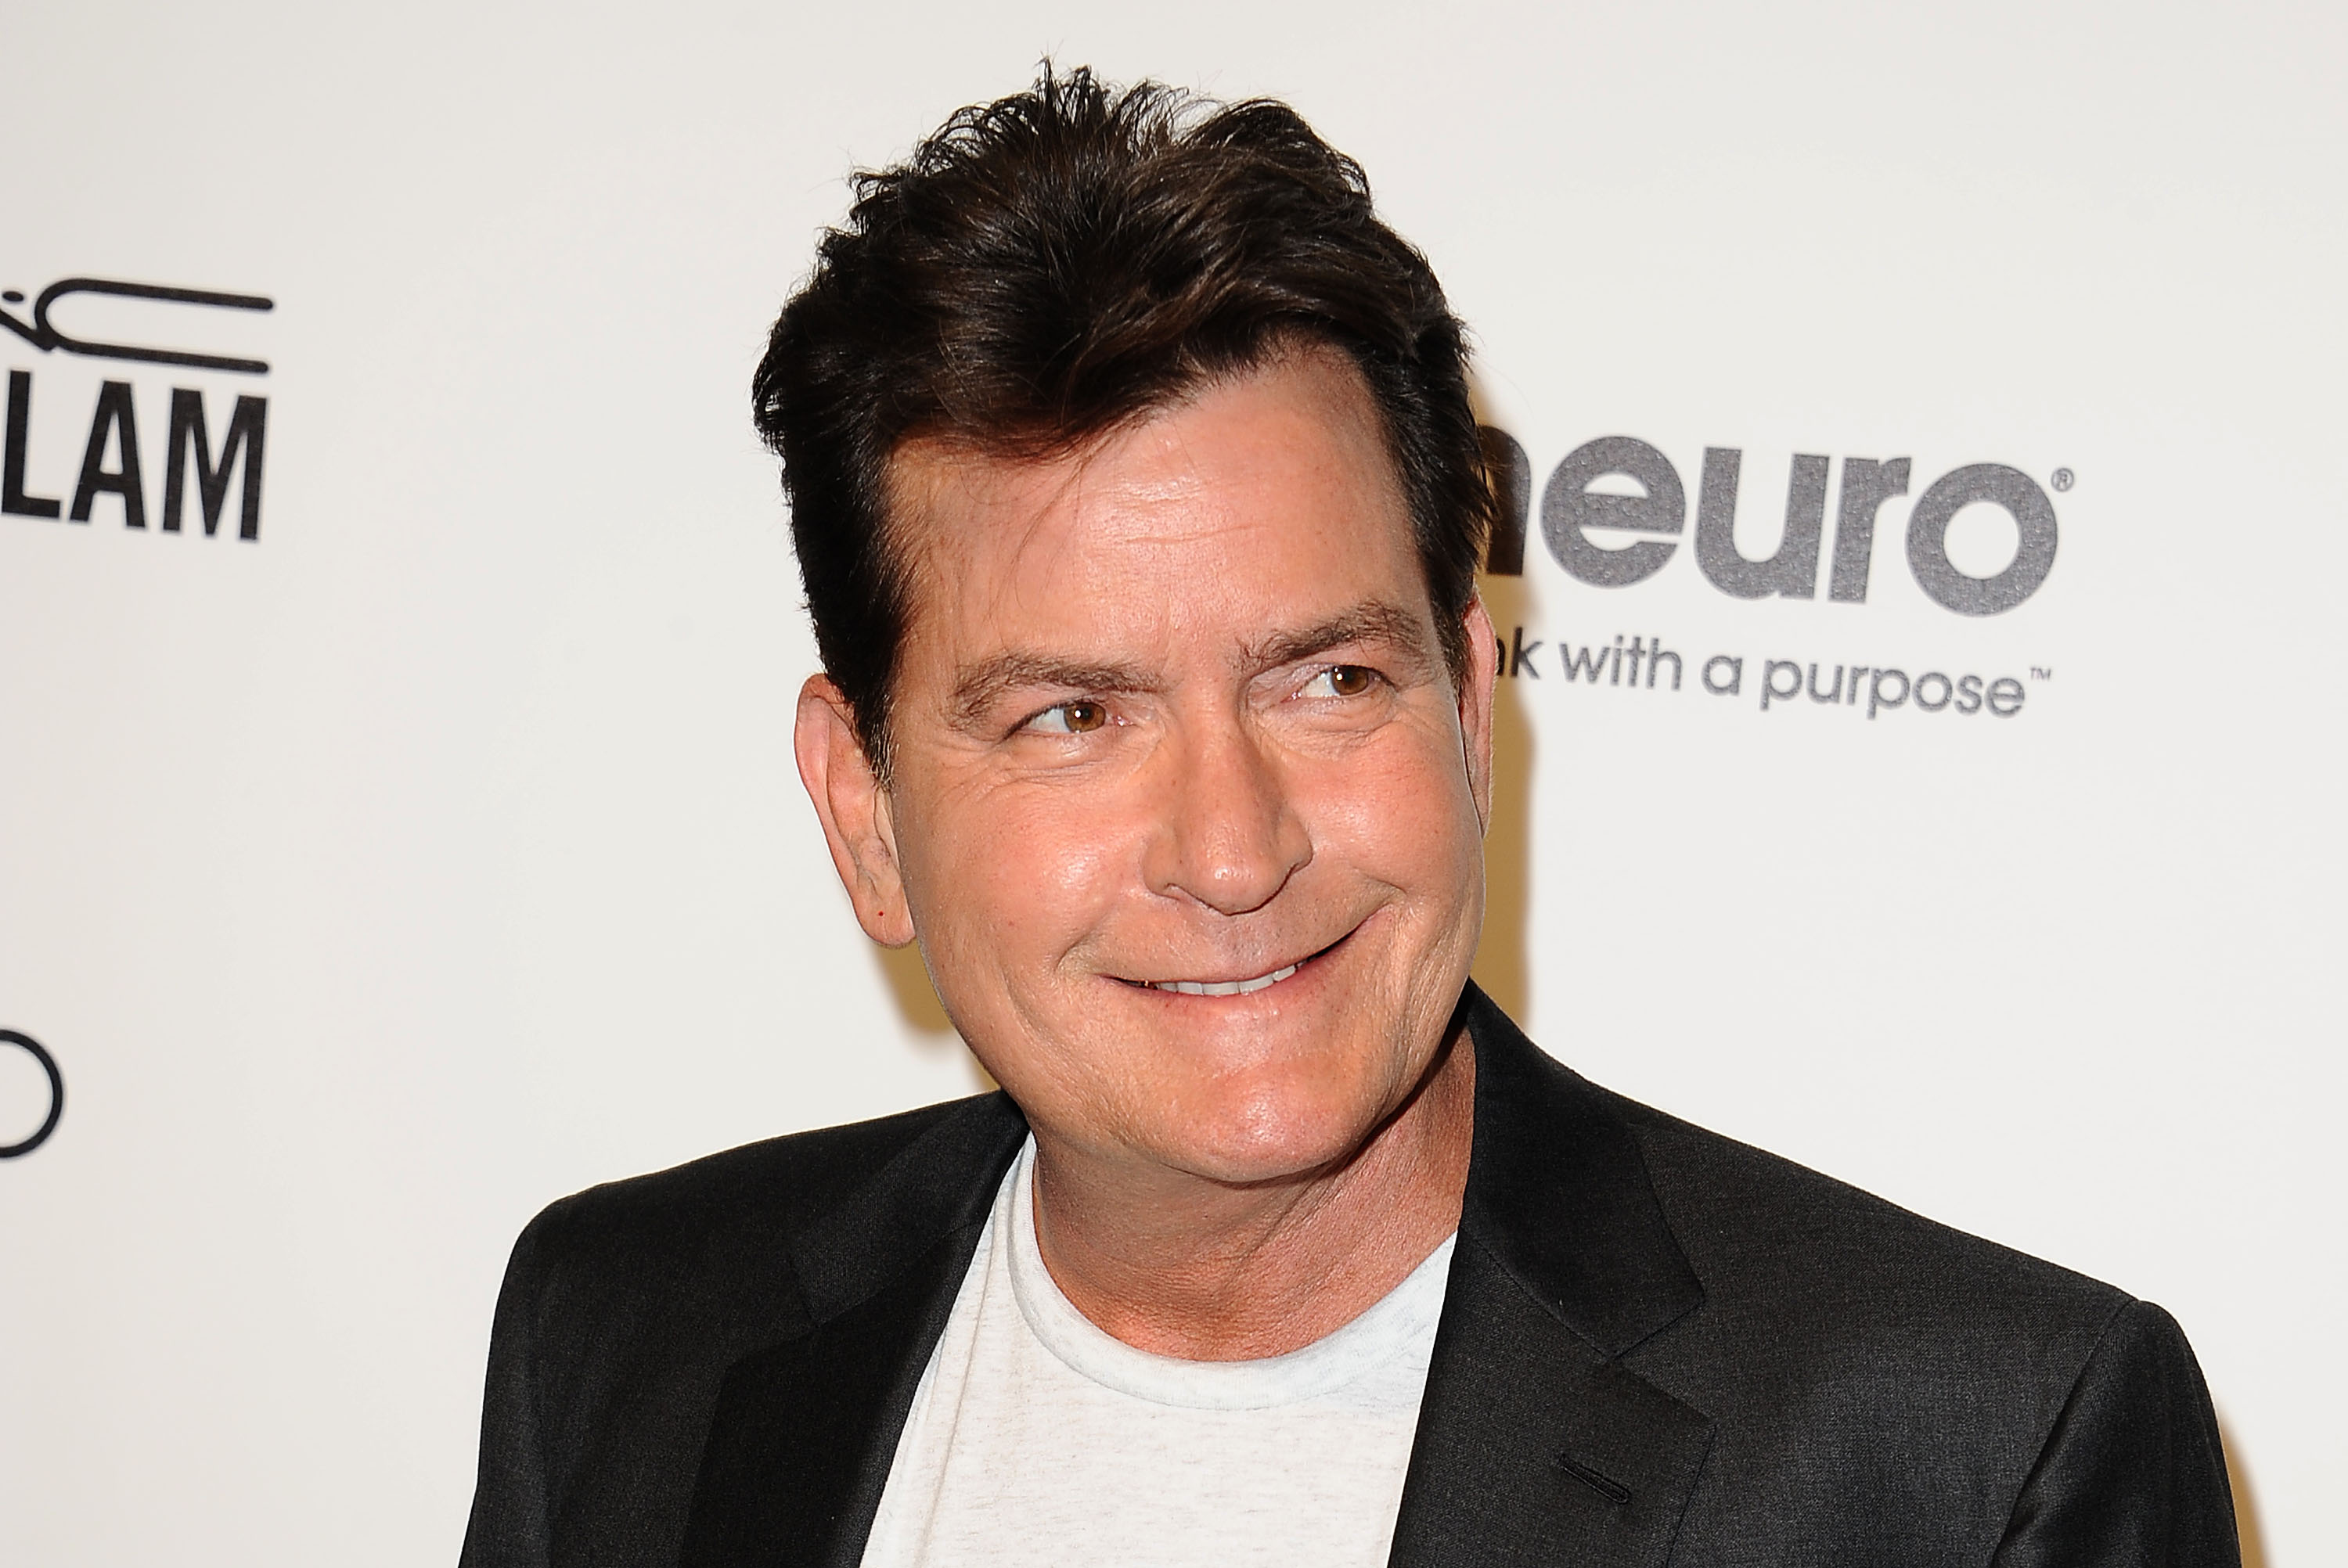 Actor Charlie Sheen attends the 24th annual Elton John AIDS Foundation's Oscar viewing party on Feb. 28, 2016 in West Hollywood, Calif.